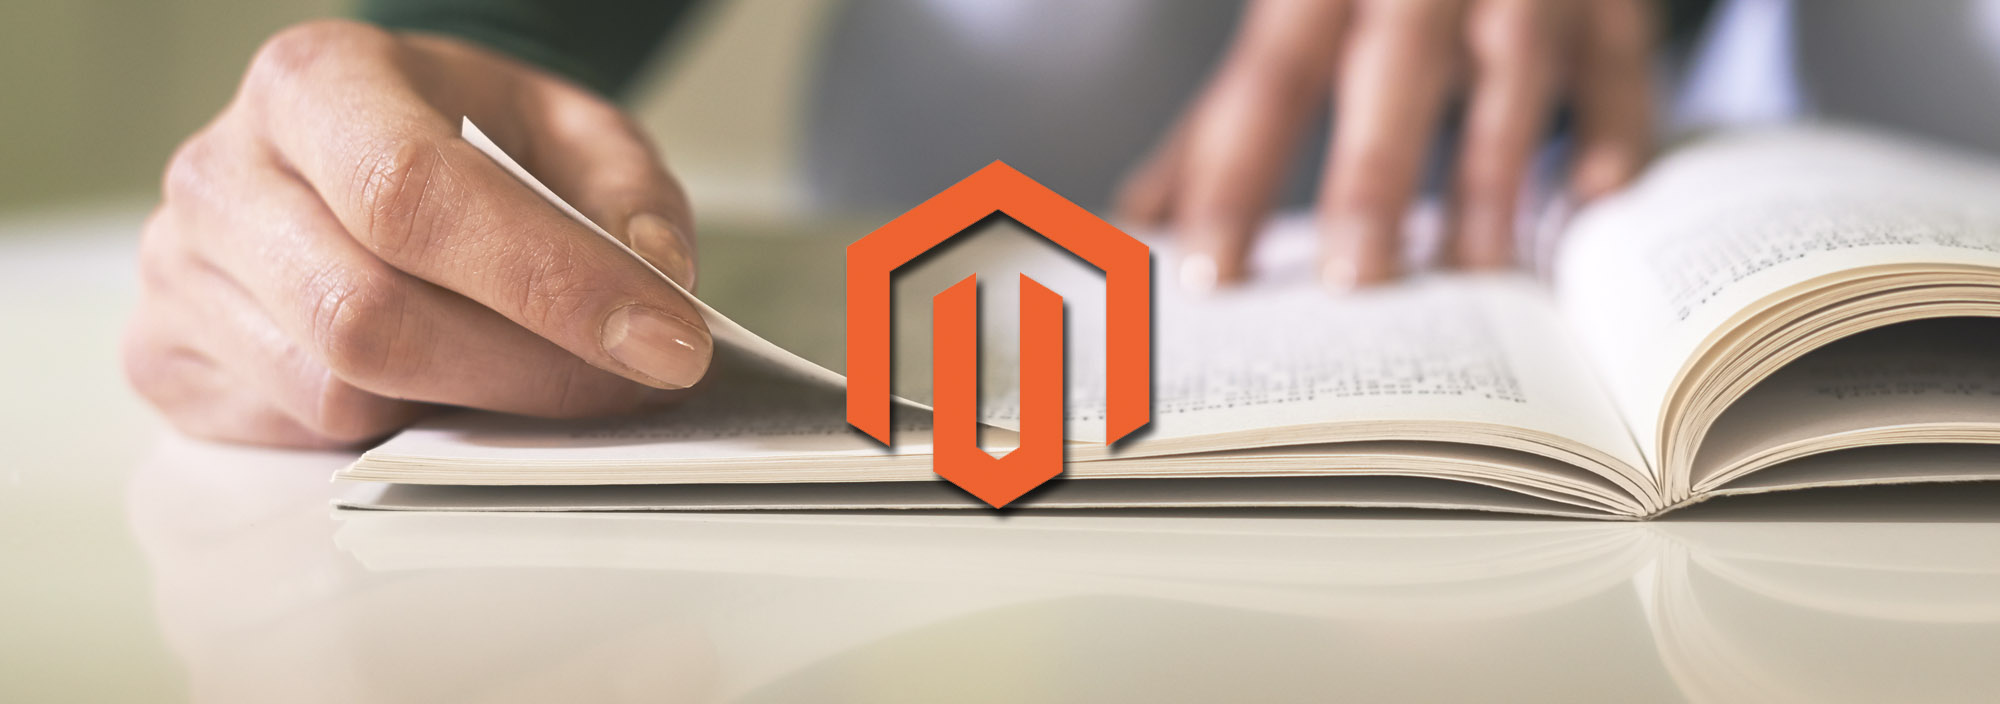 Magento 2 Vs 1.9: Whats New For Merchants And Developers